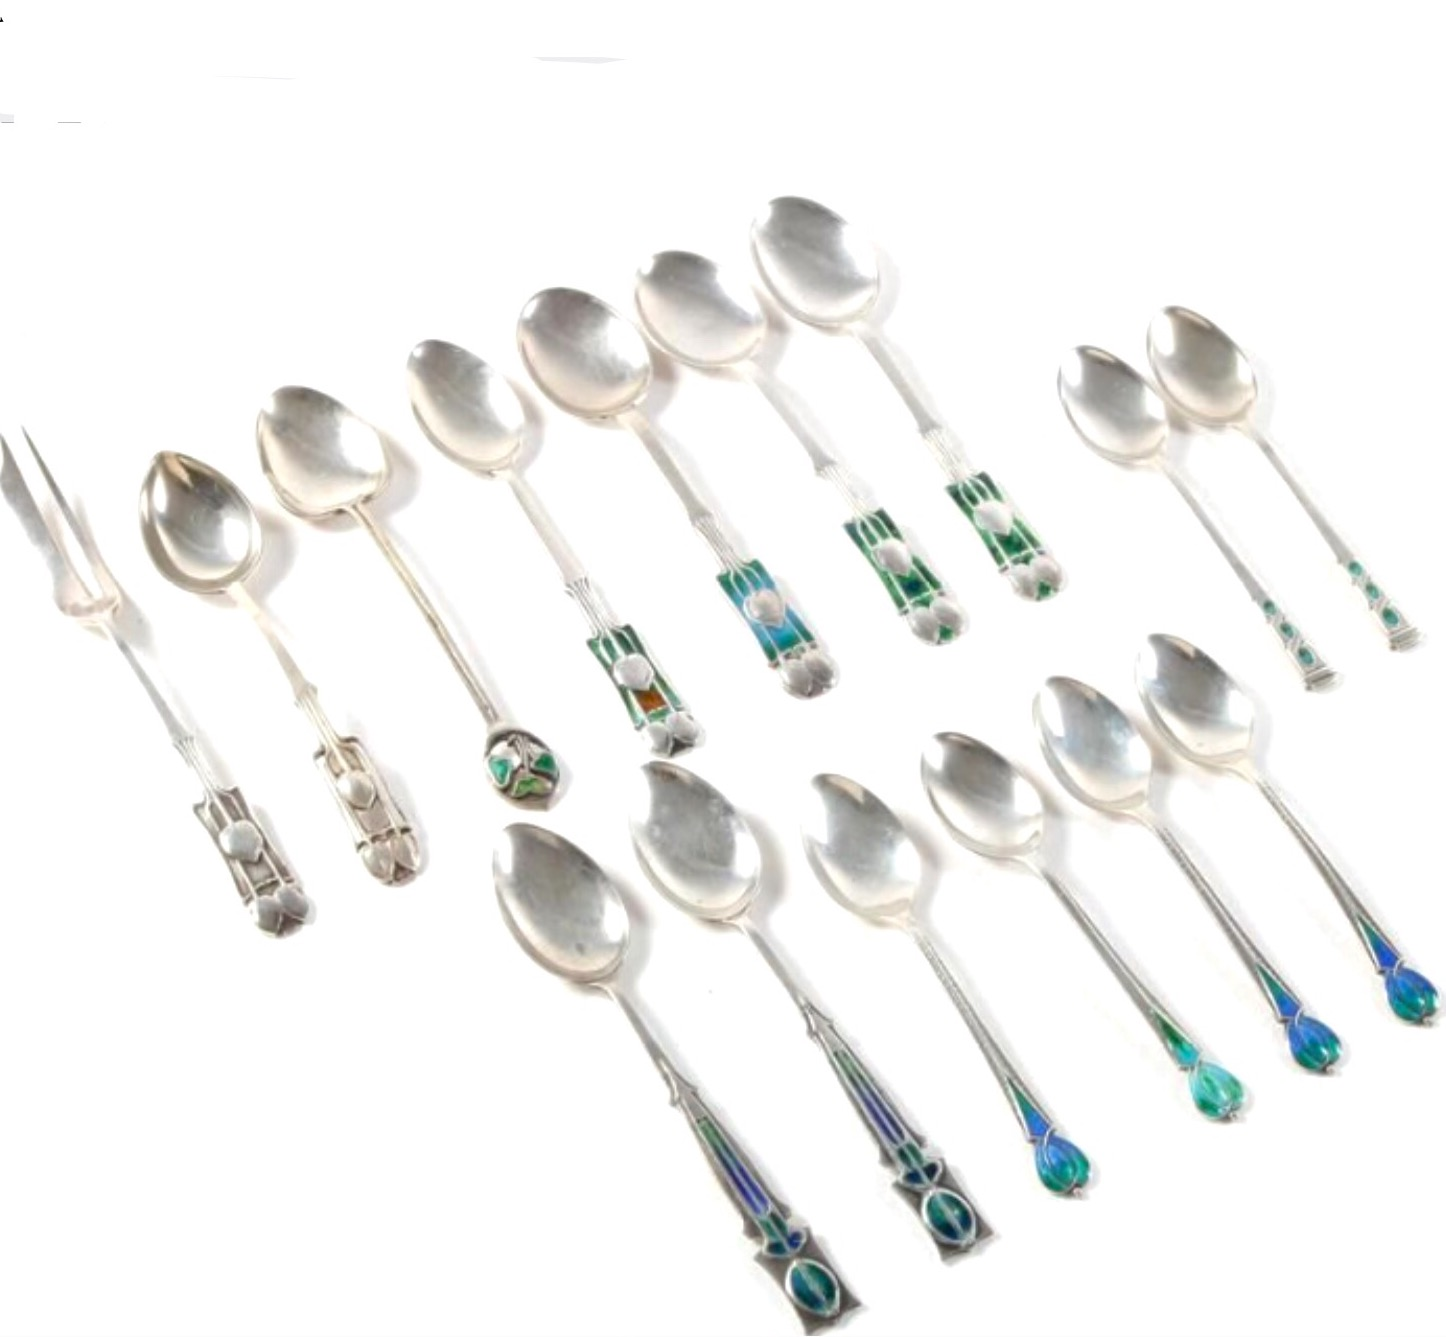 Liberty Cymric spoons by Archibald Knox